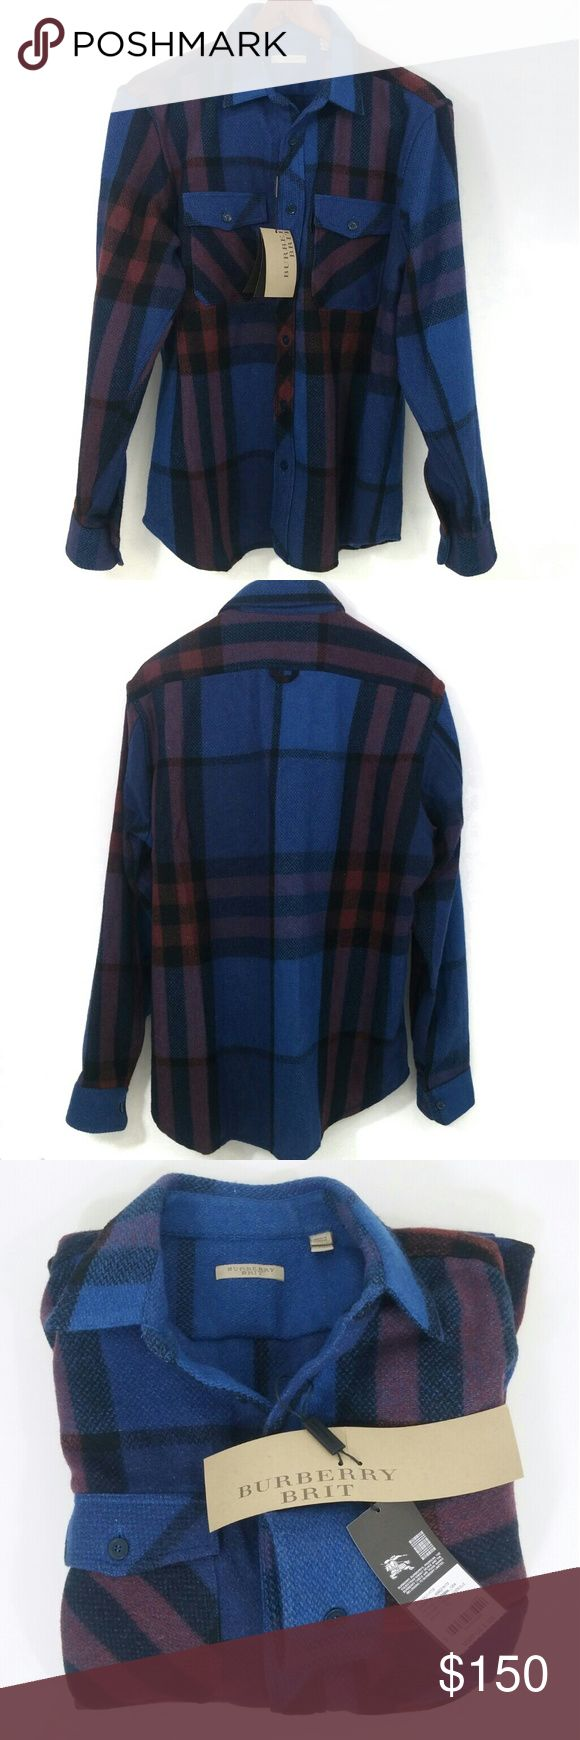 Burberry Brit Men's Plaid Wool Shirt NWT XL Burberry Brit men's plaid shirt size XL, in bright Windsor blue, black, and rust (when blended with the blue in the plaid appears burgundy). Brand new with tags still attached. Retail price is $325. Two front pockets. 75% virgin wool and 25% nylon. Spare button in plastic packet. Please note that XL size is not cut as generously as many US-made shirts. From the top of the collar to the back bottom hem at middle is 32 inches; from middle of neck to…